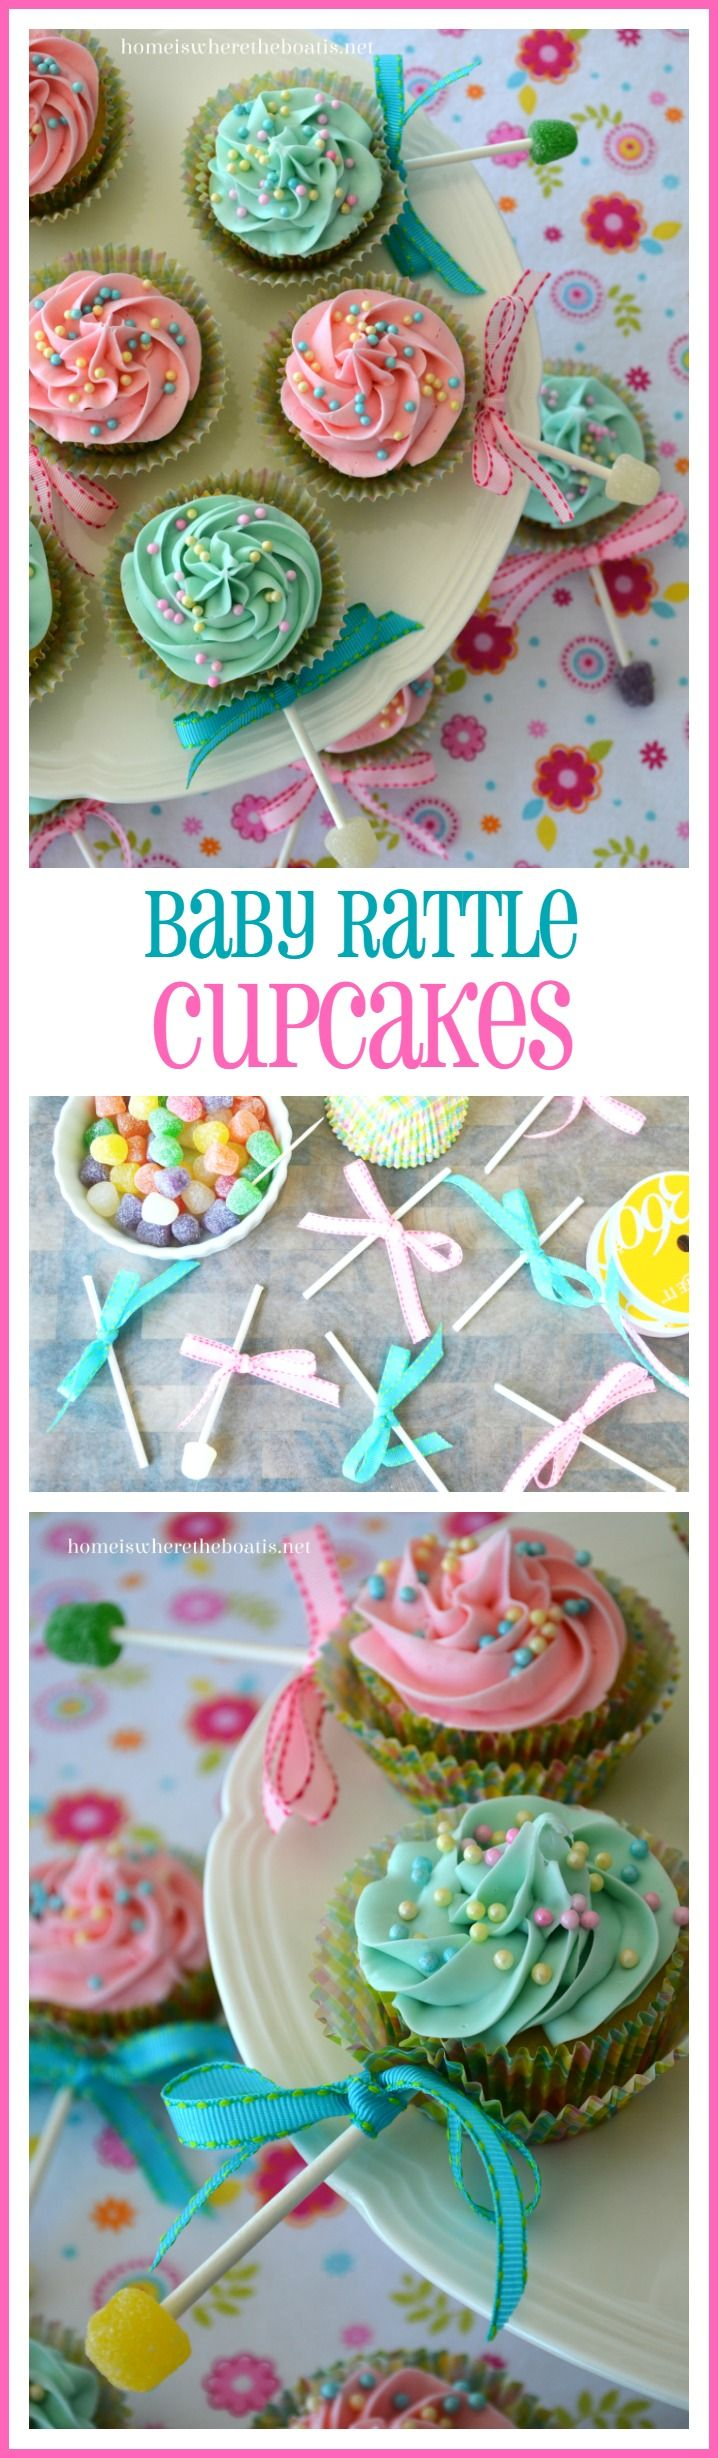 best 25 baby shower cupcakes ideas on pinterest cupcakes for baby shower baby shower cup and baby boy cupcakes